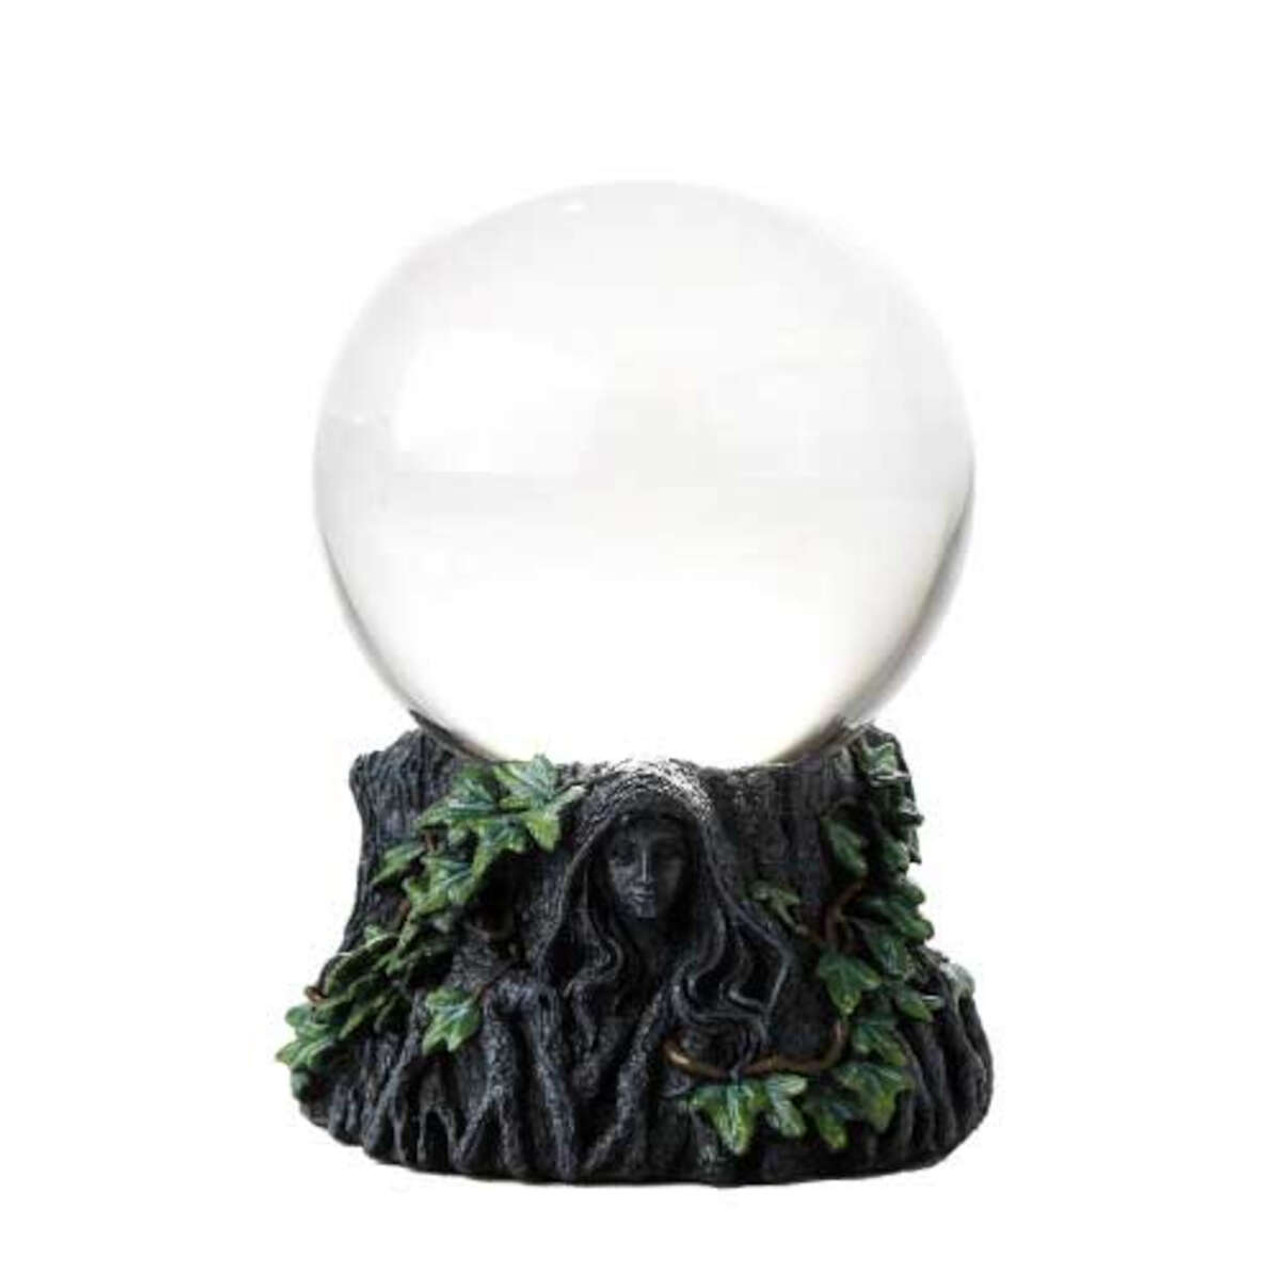 100mm Maiden, Mother Crone with Clear Gazing Ball